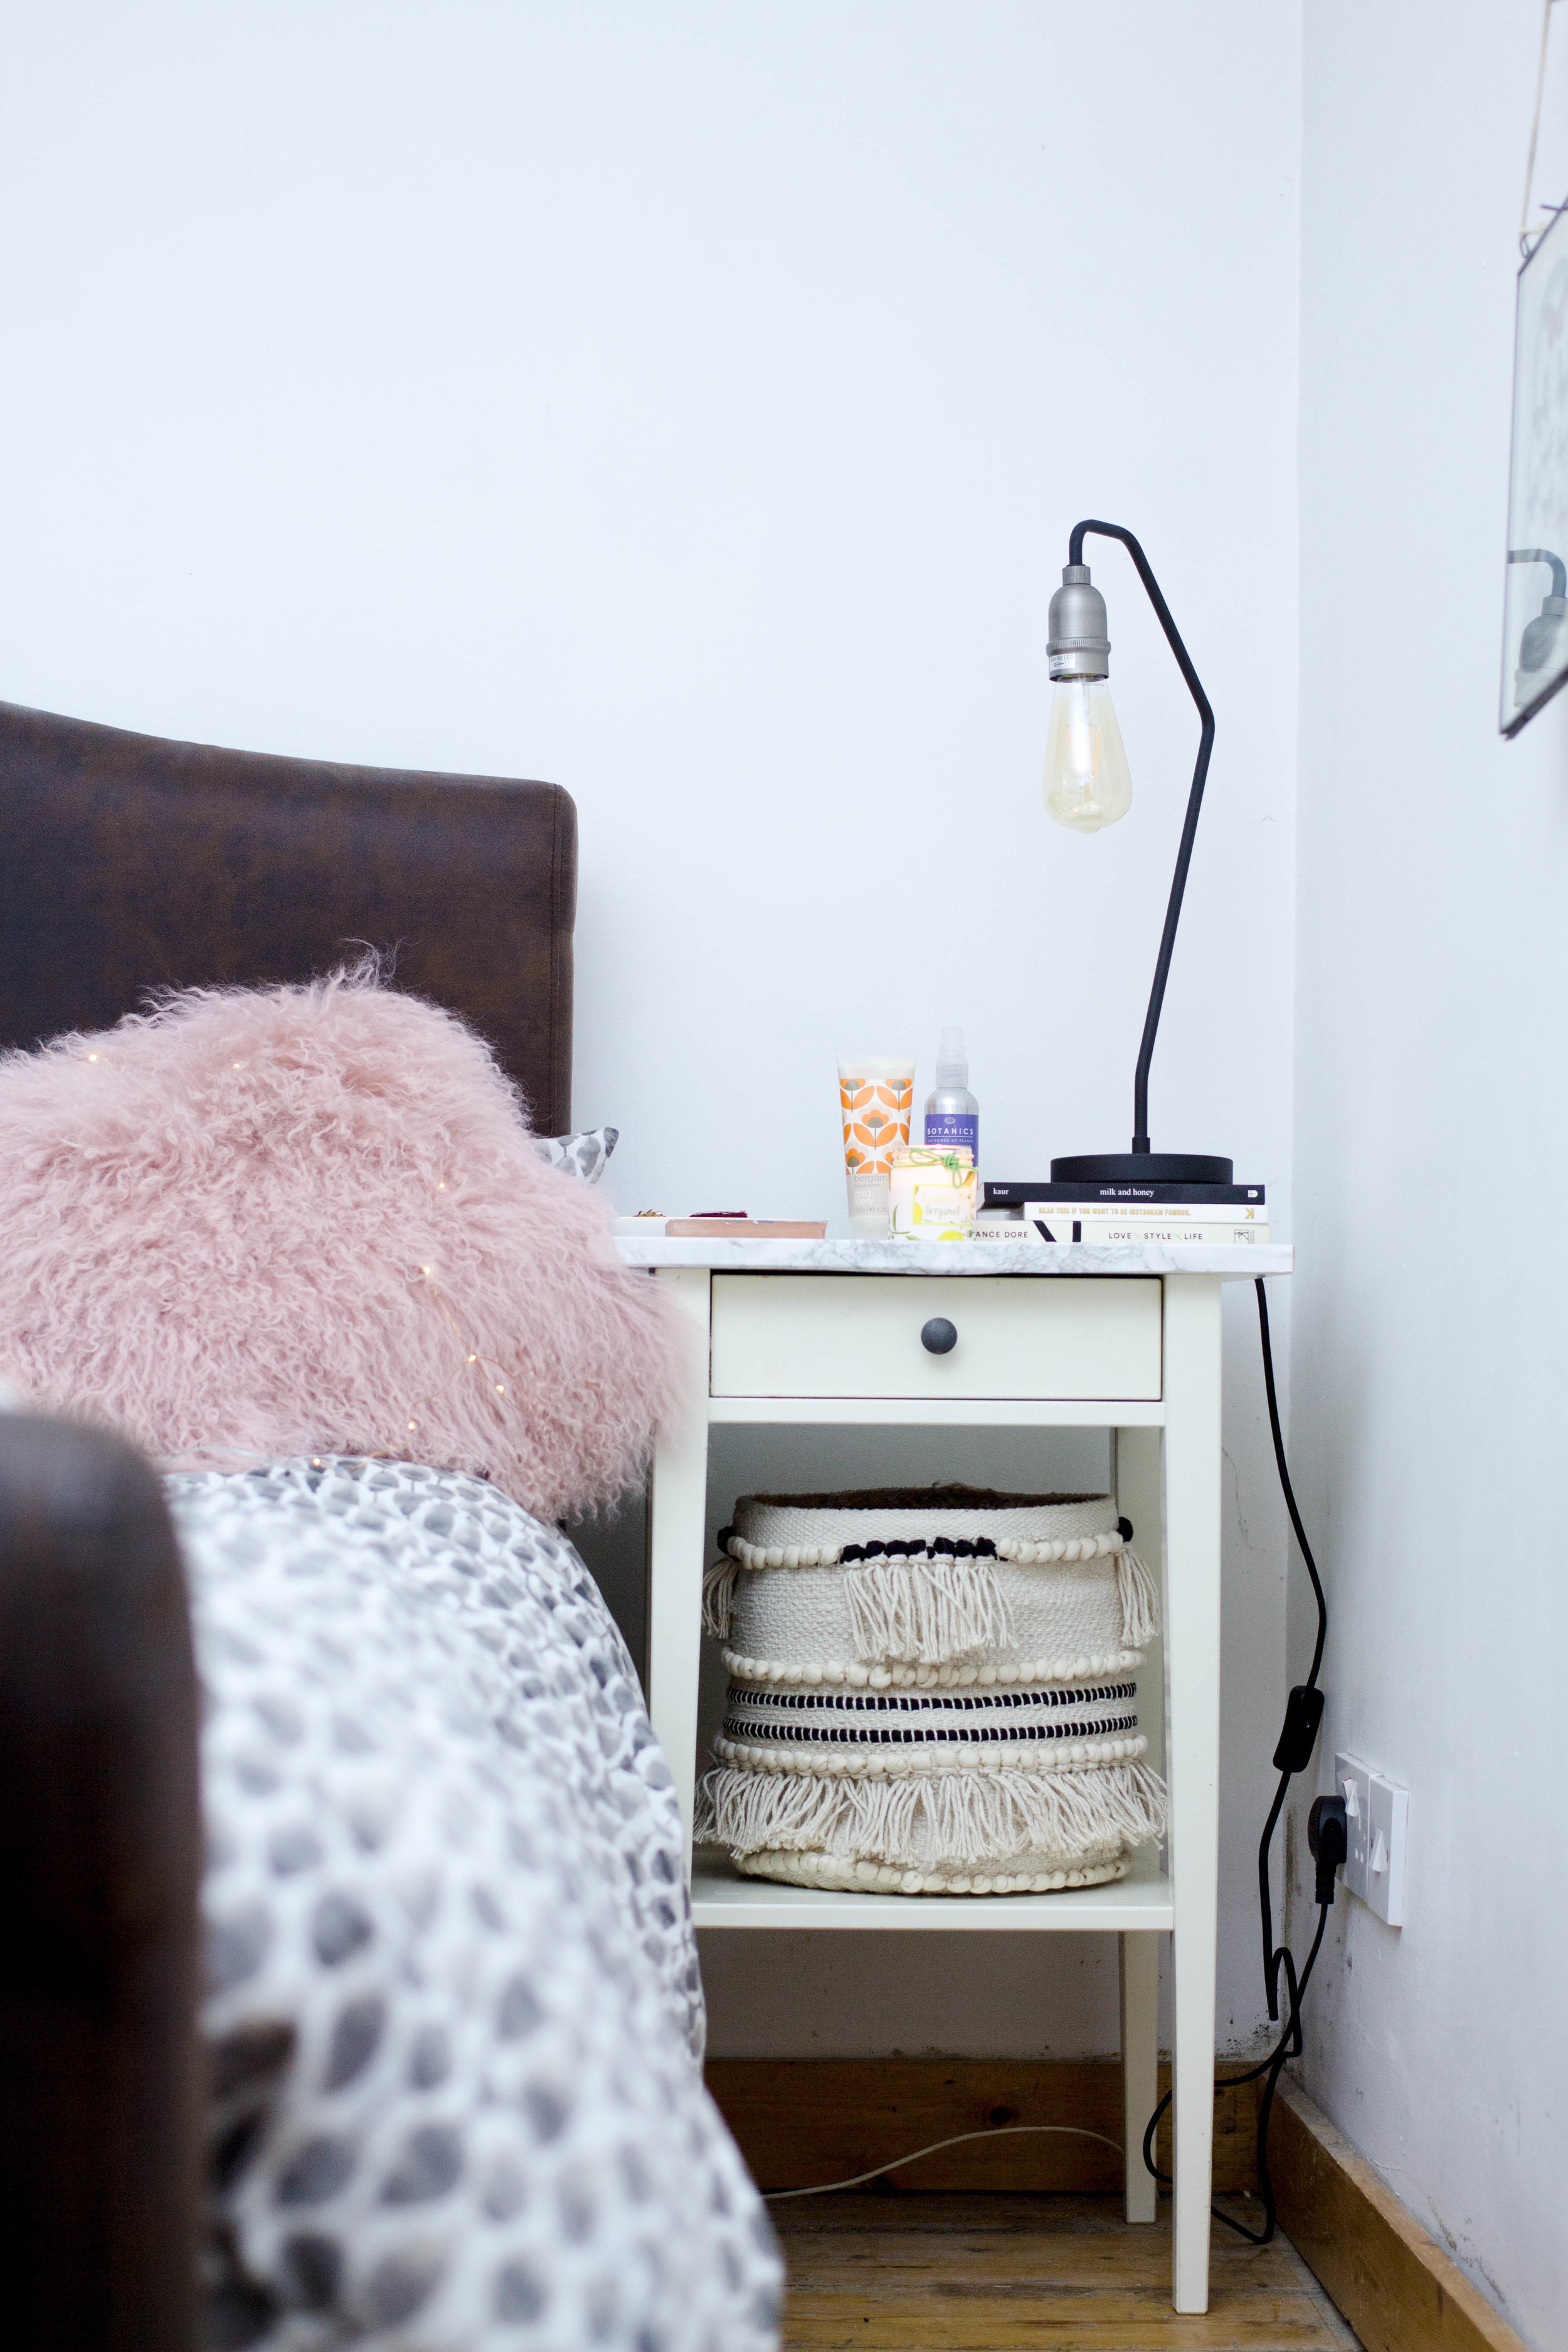 Styling-Bedside-Table-Tips-Rush-and-Teal-9.jpg